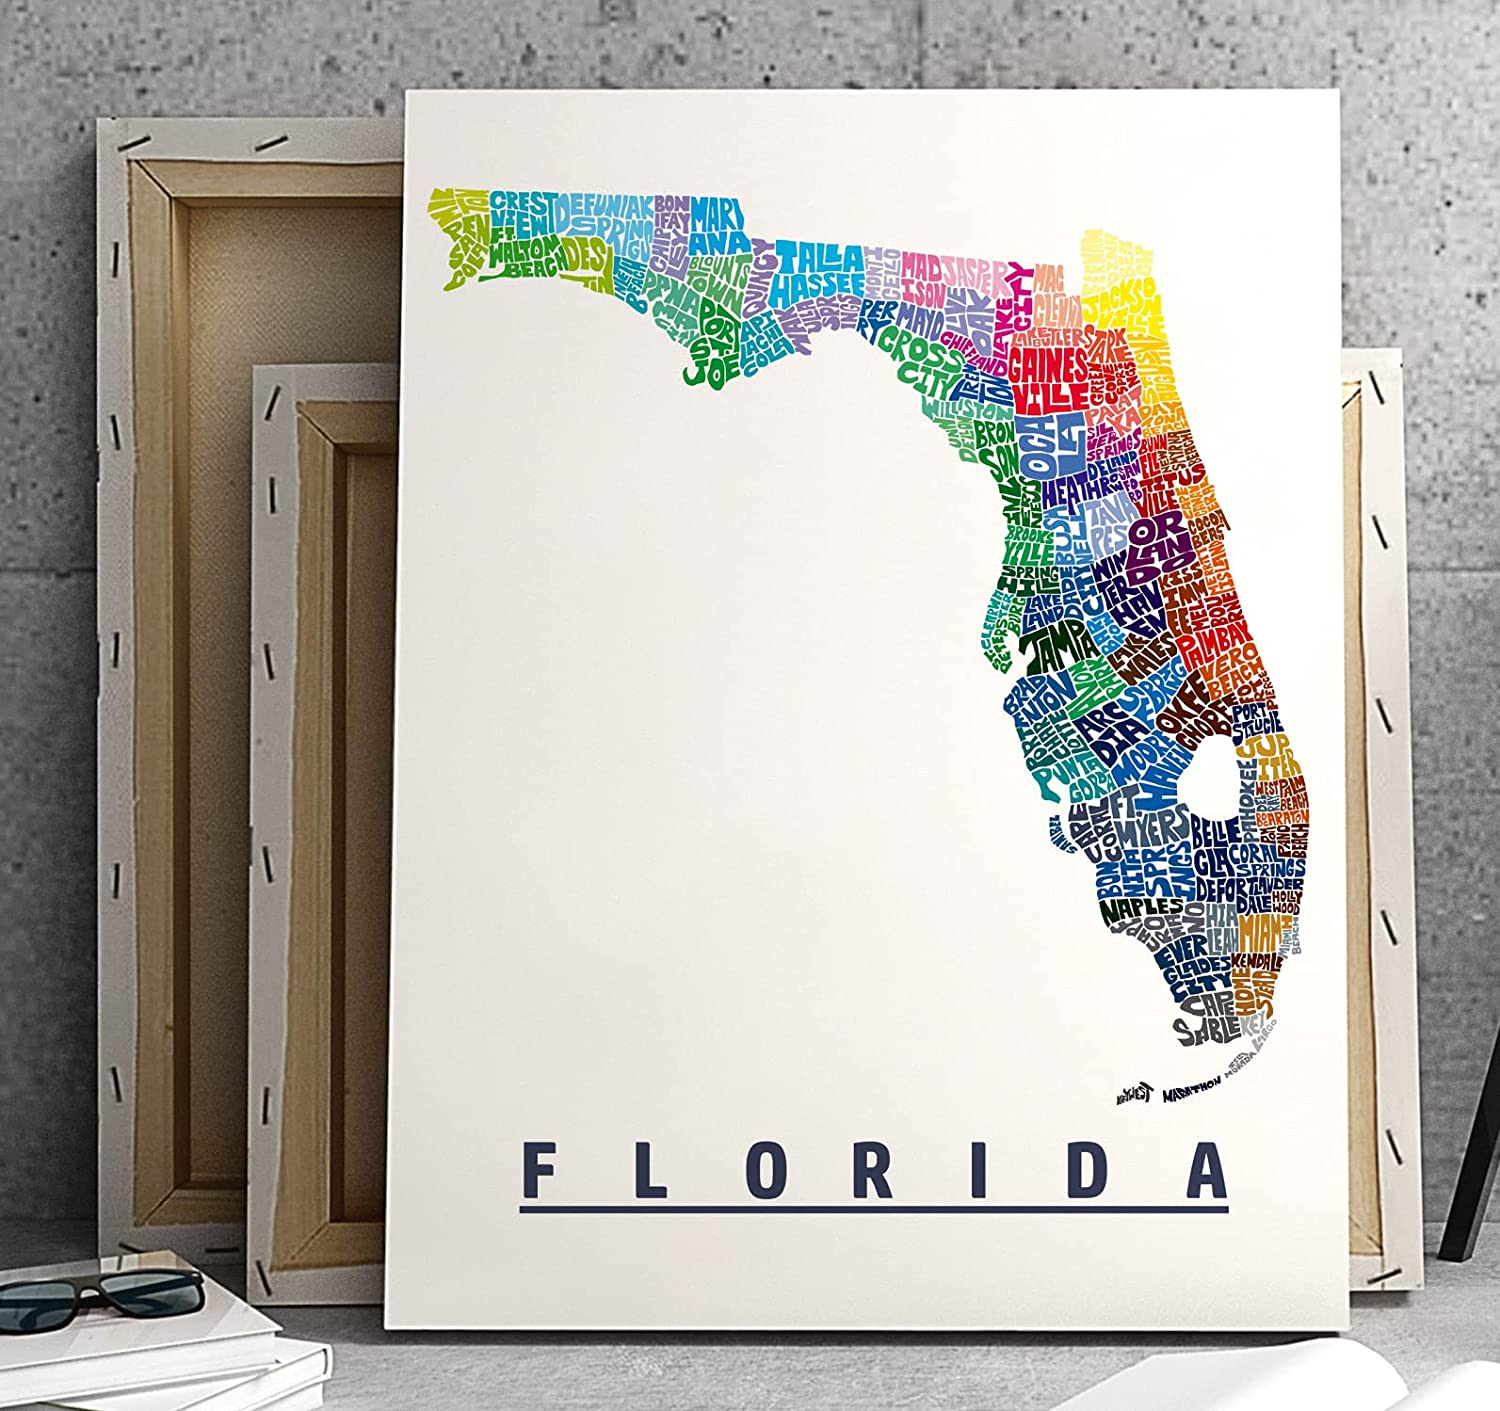 Birthday Wedding Travel Mother/'s Day State City /& Heart Custom Framed Handmade Canvas Art Personalized Gift  FLORIDA Map 11x14